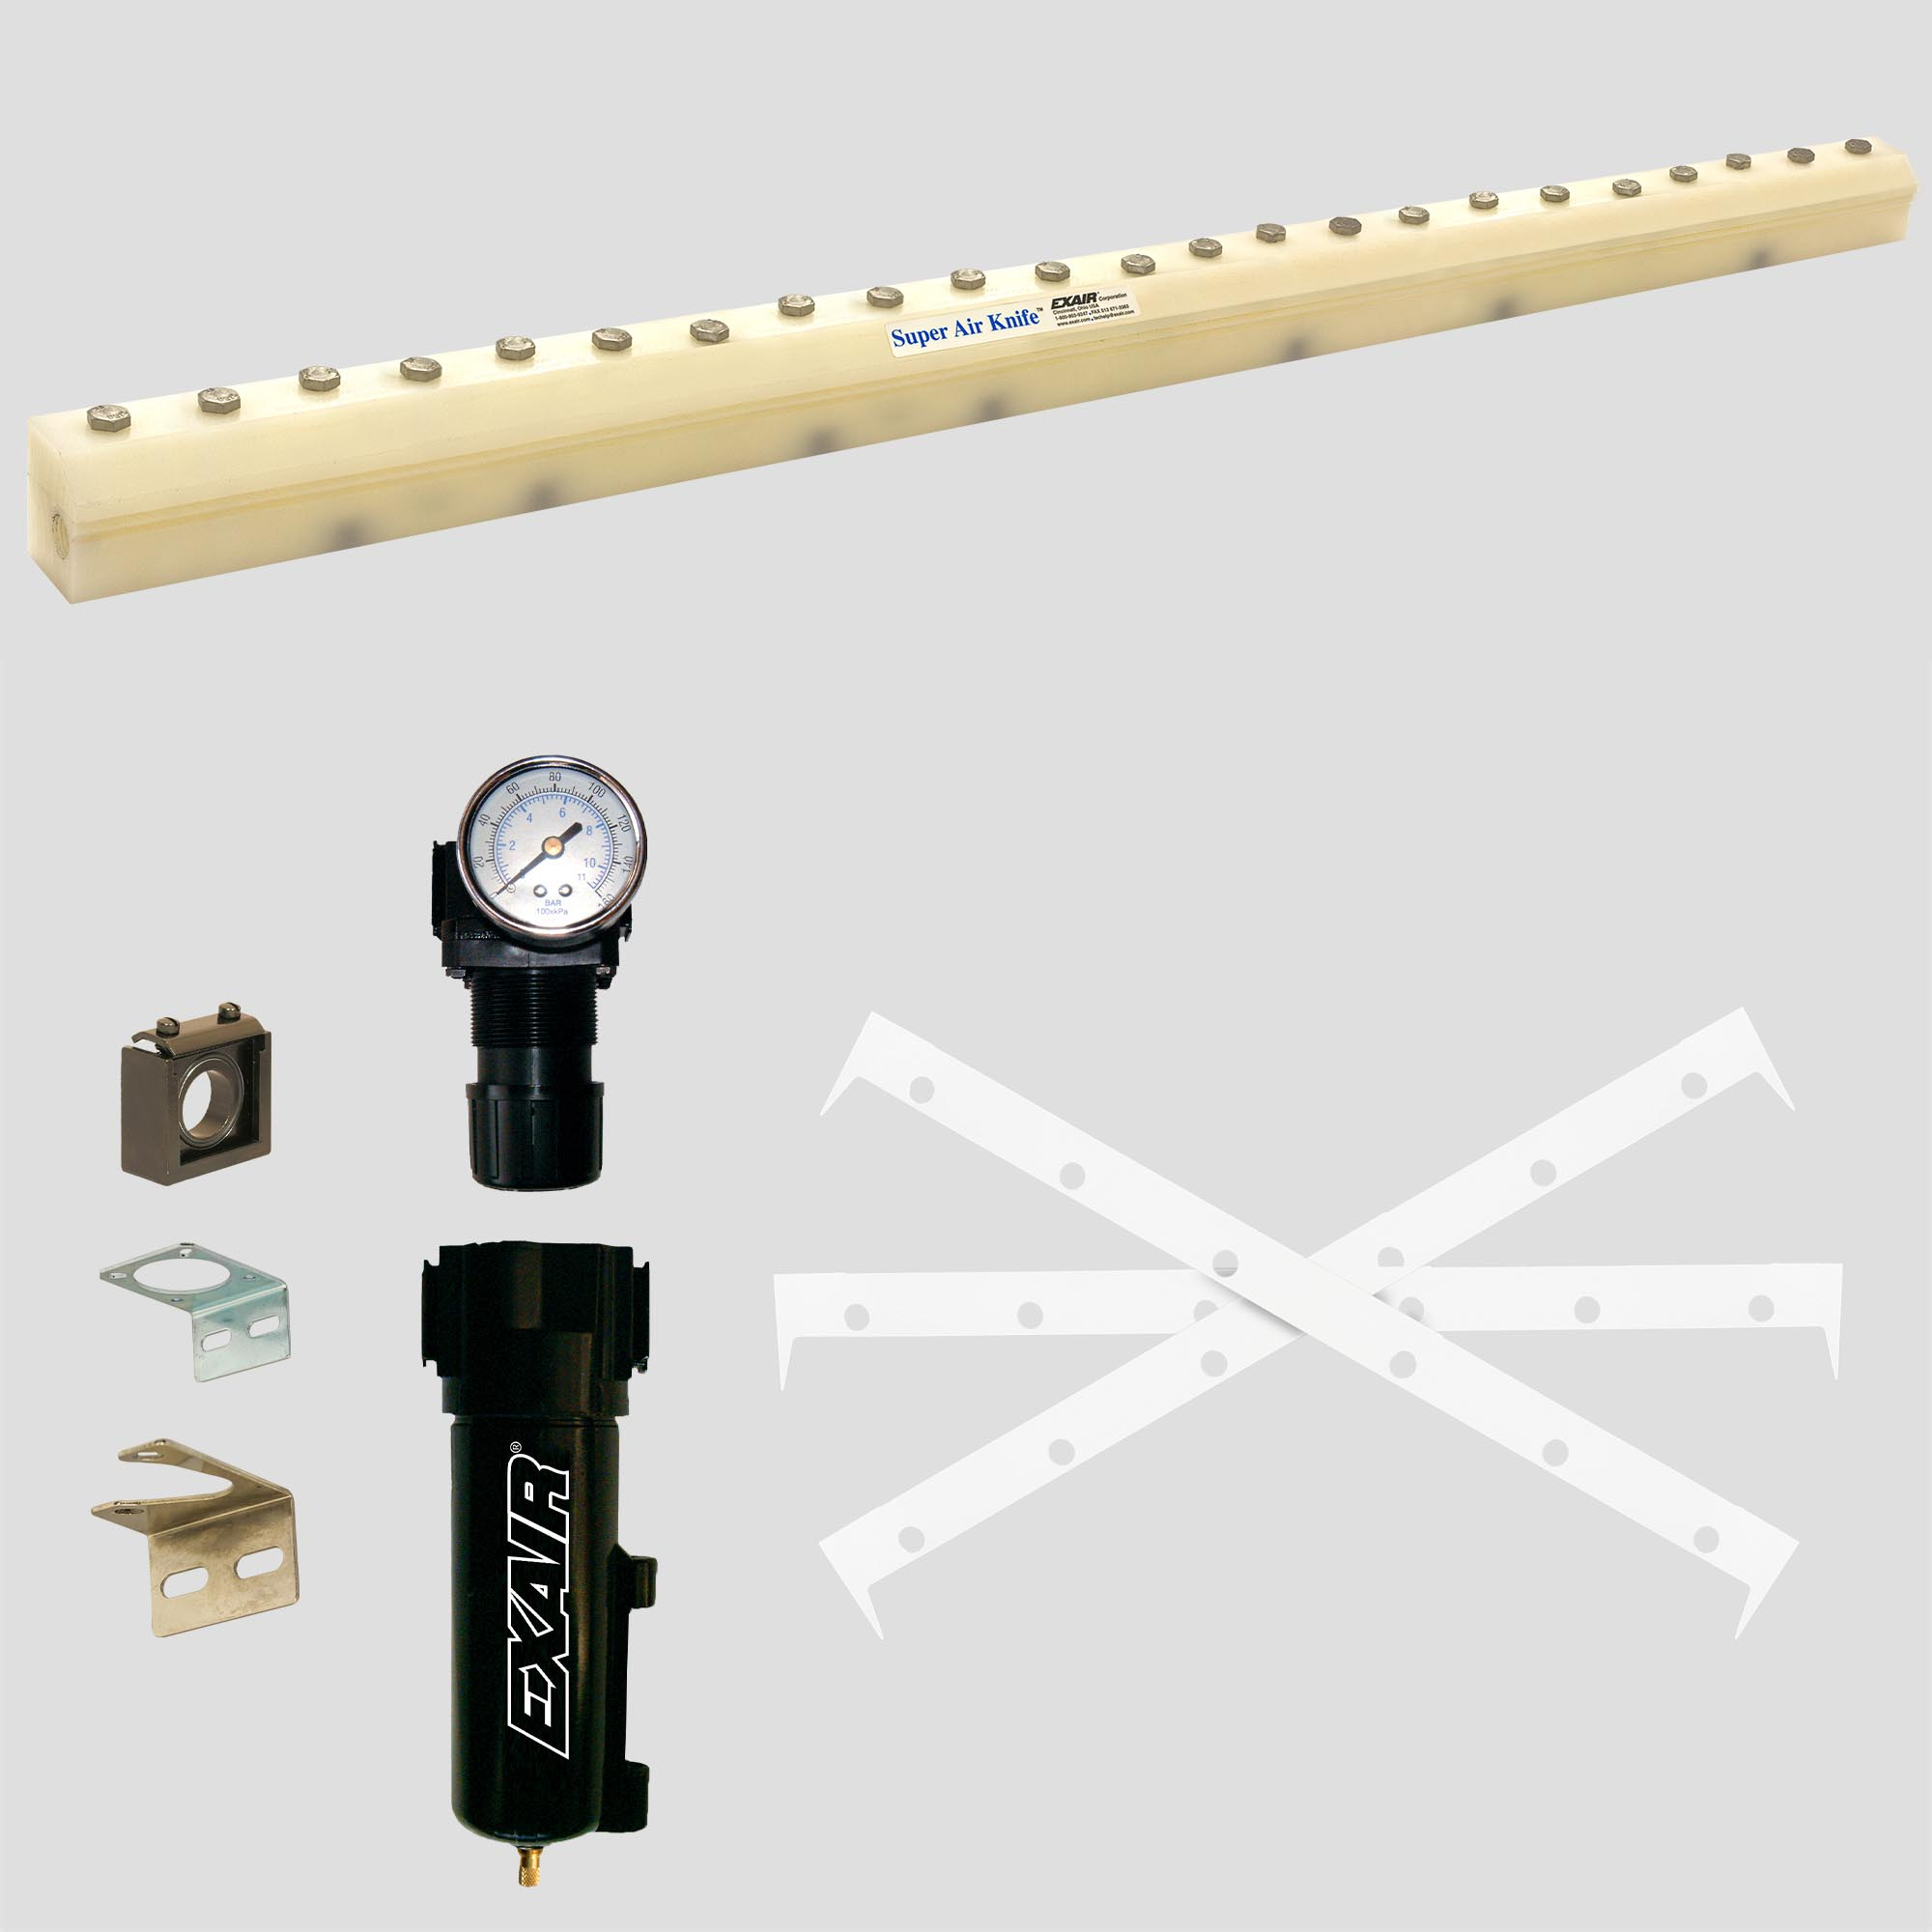 PVDF Super Air Knife Kit includes PTFE shims, filter and pressure regulator.